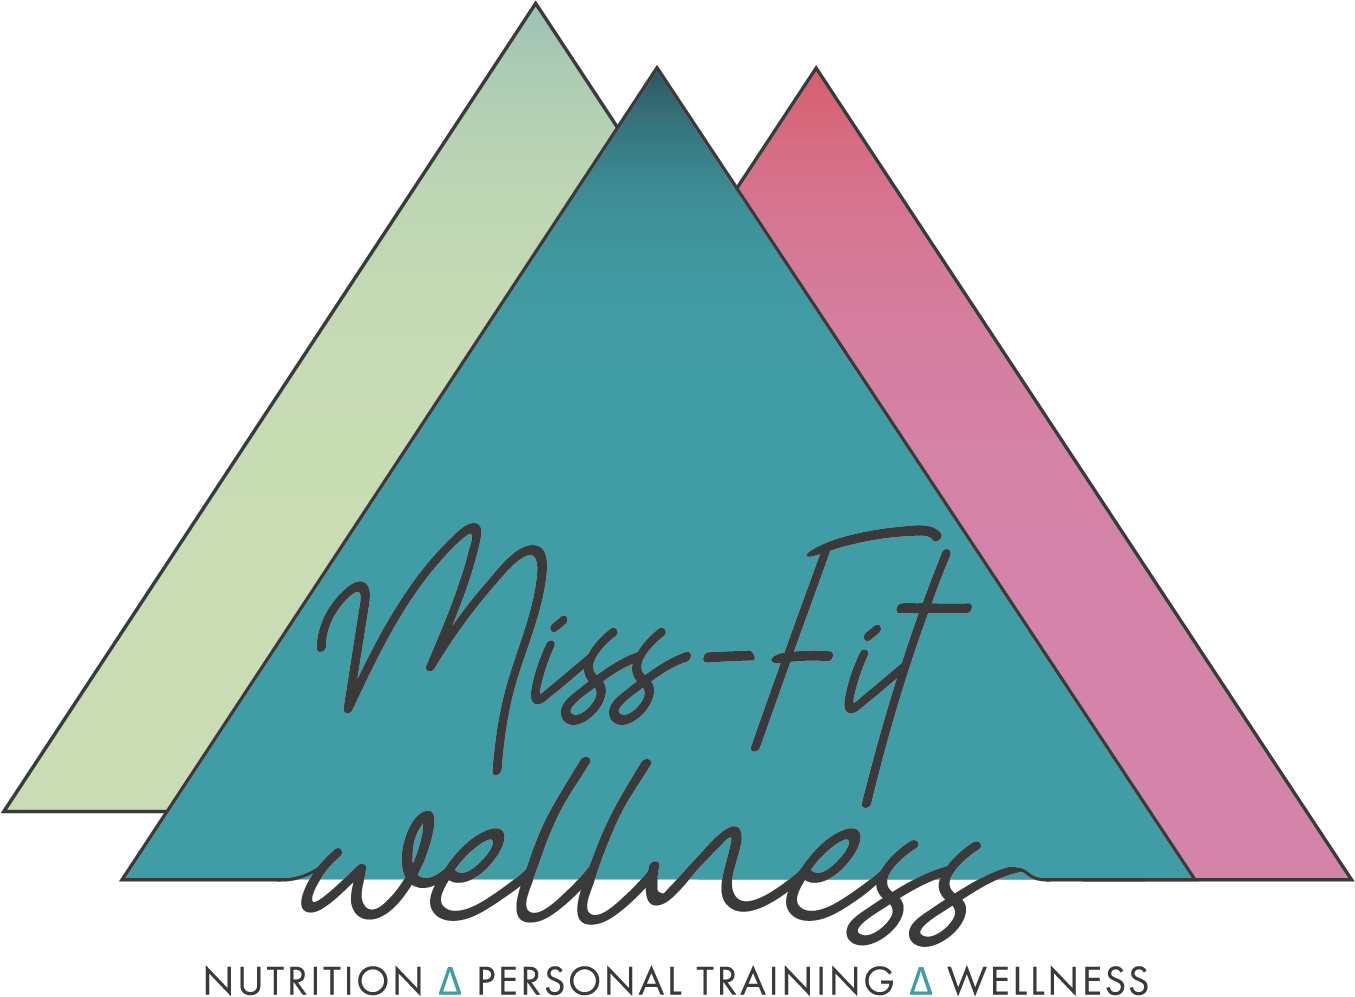 Miss-Fit Wellness